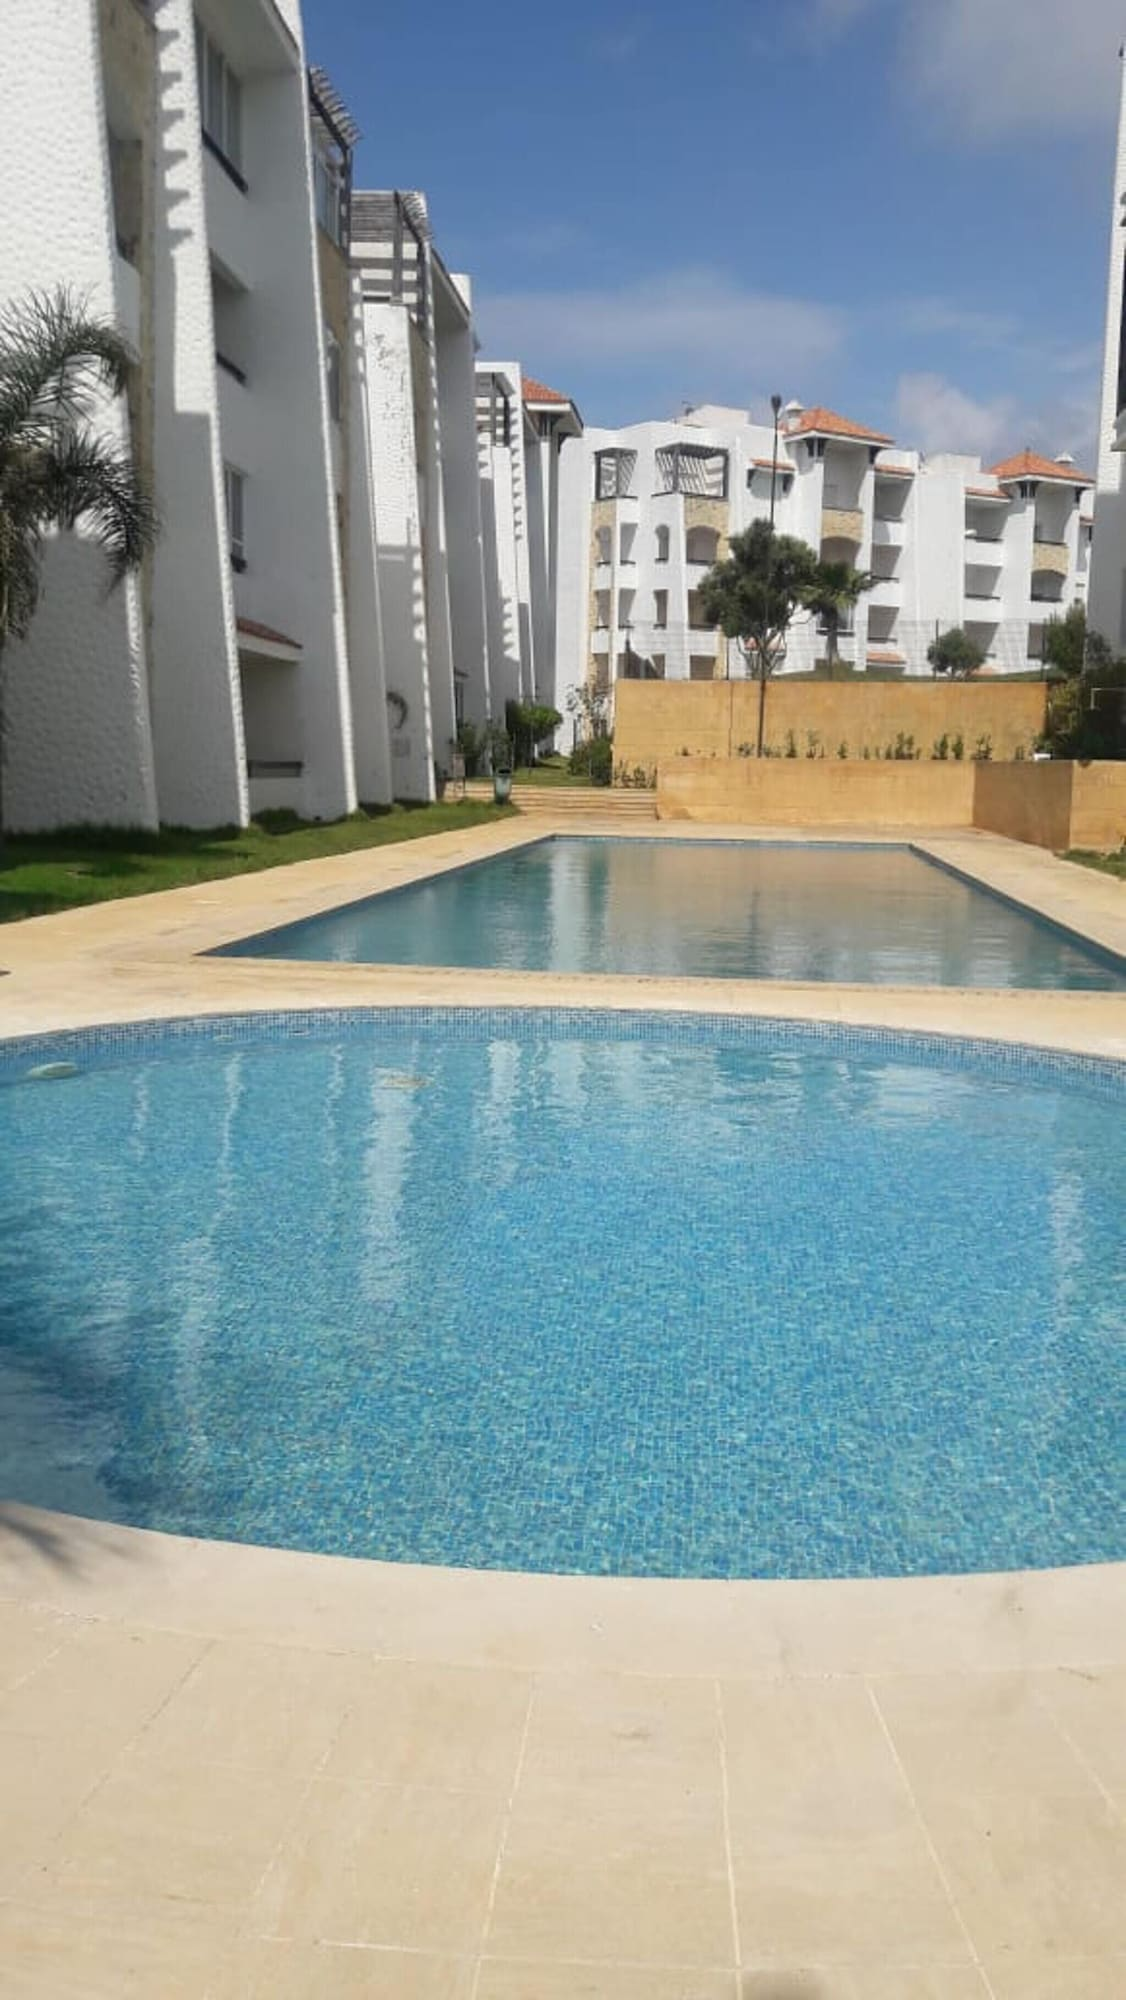 Apartment With one Bedroom in Asilah, With Pool Access and Balcony, Tanger-Assilah